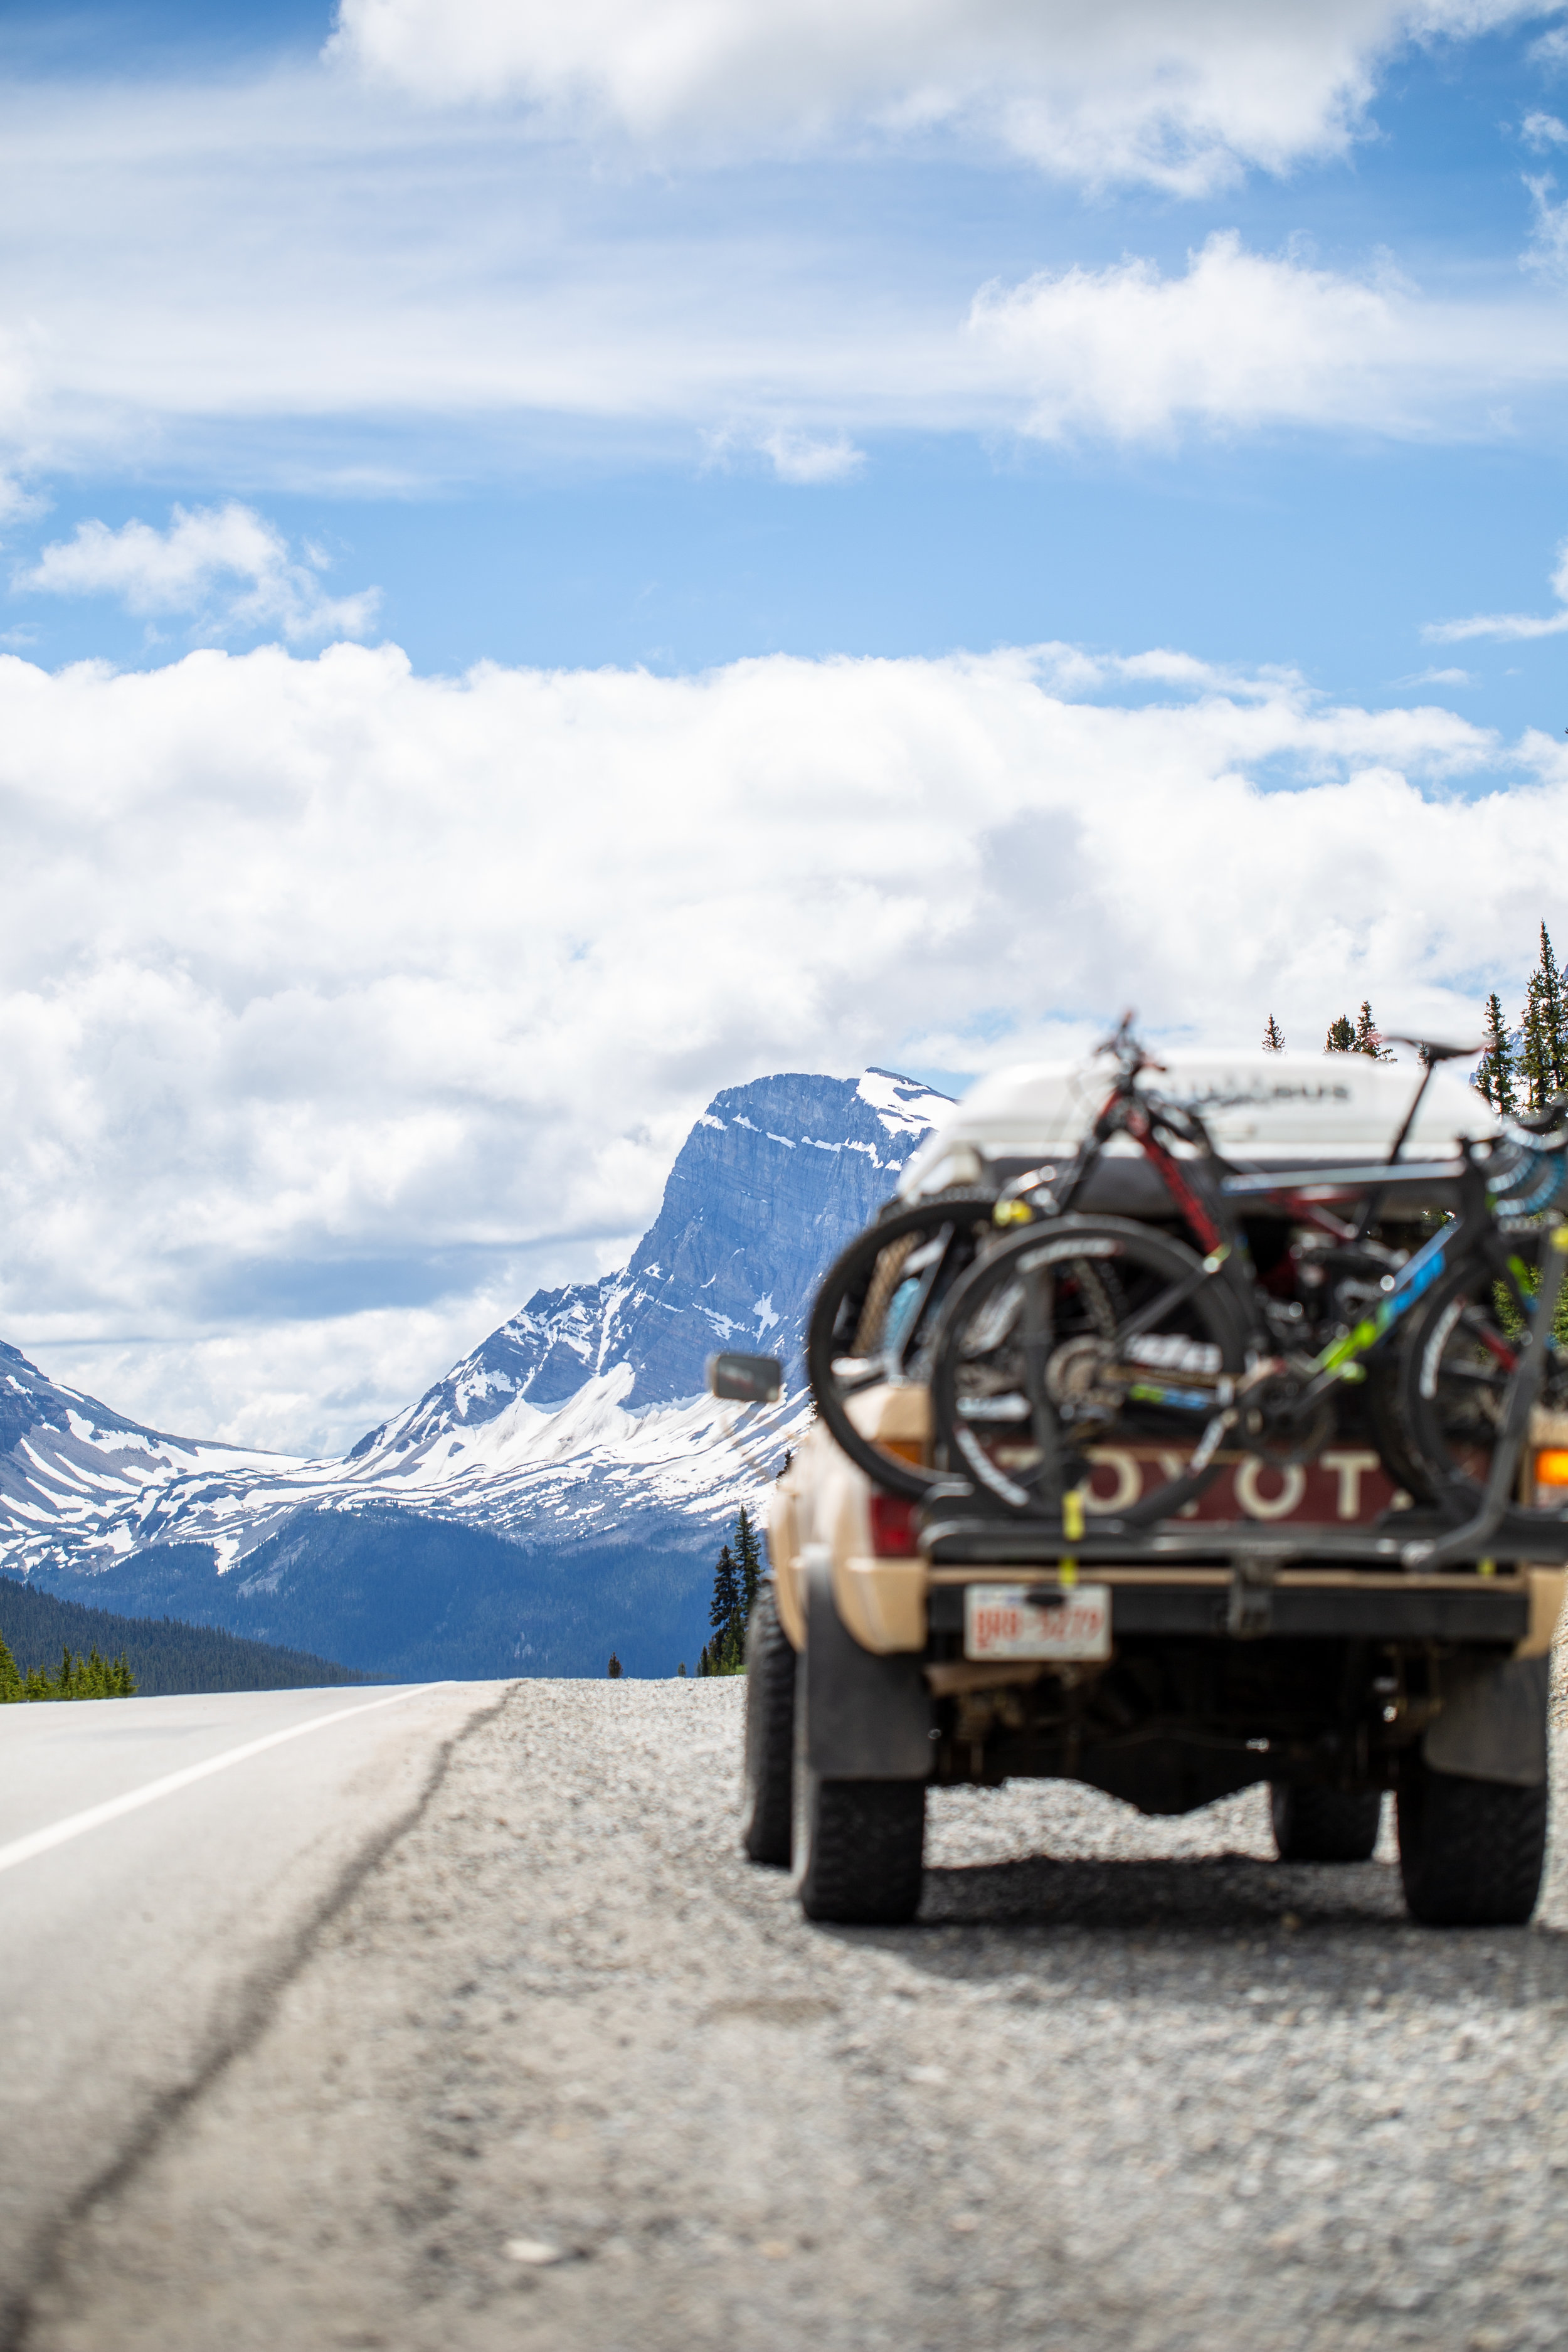 Icefield Parkway views never disappoint.